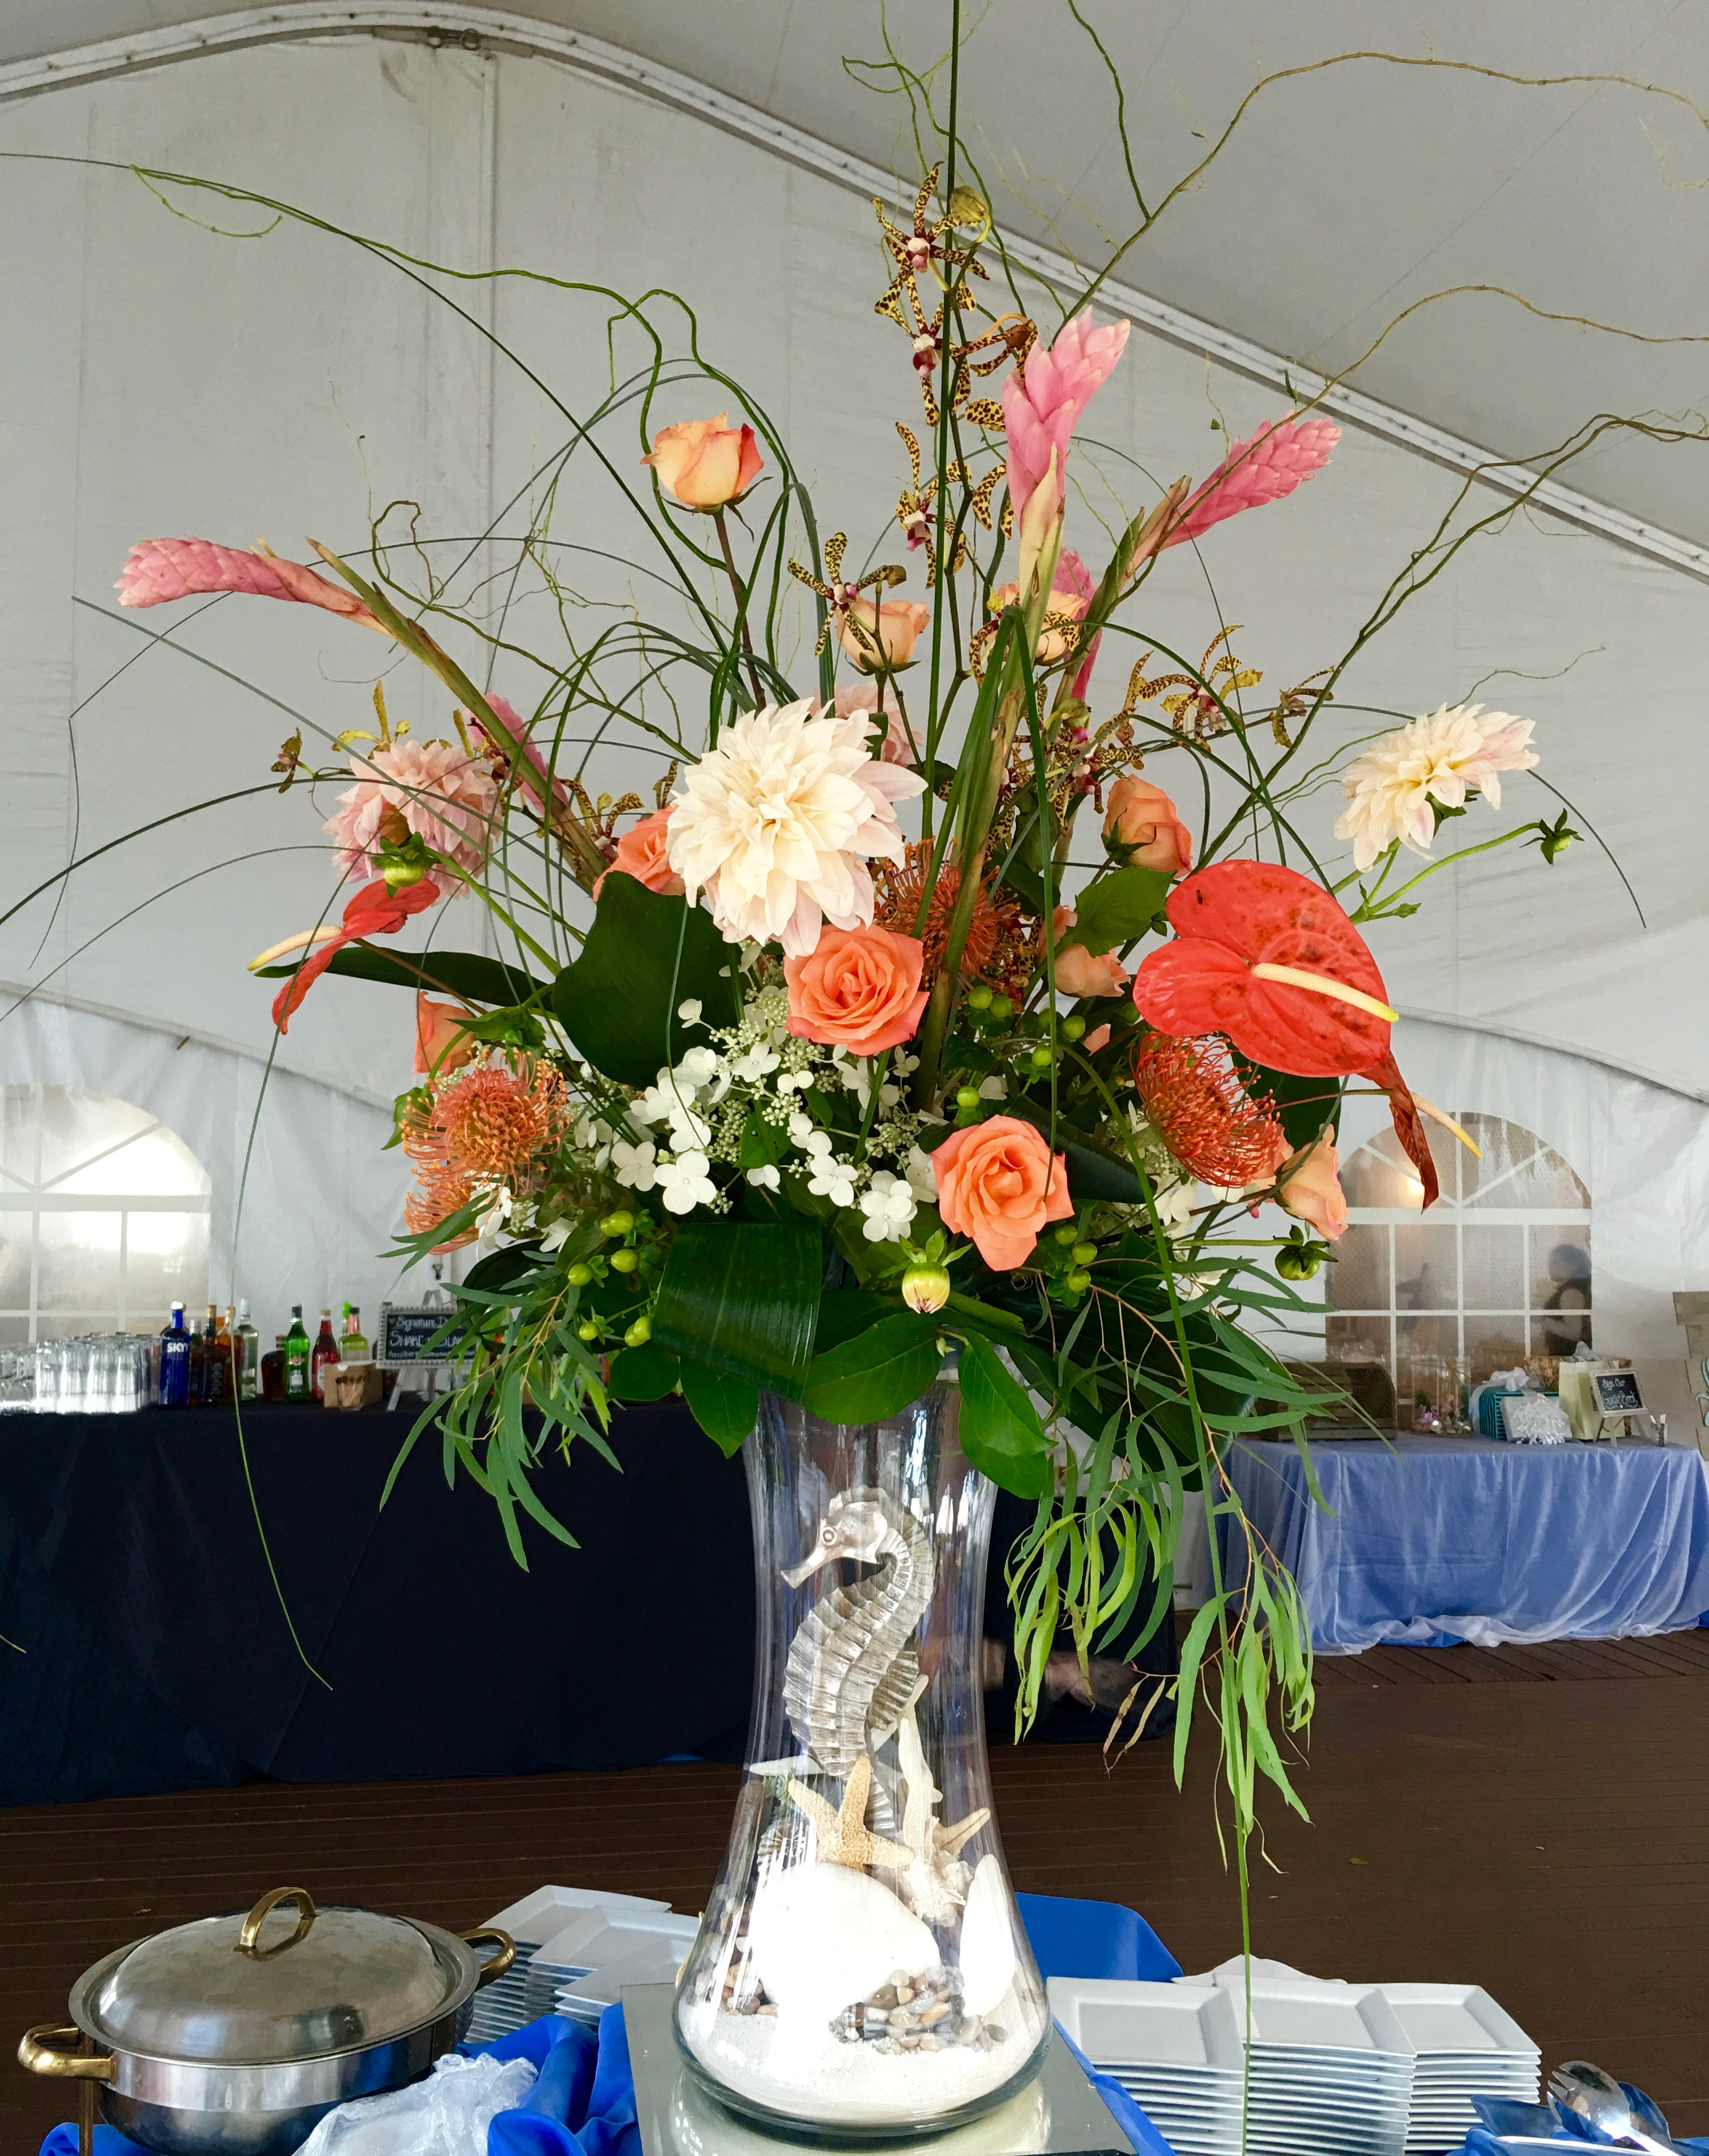 Floral Design/Wedding Decor